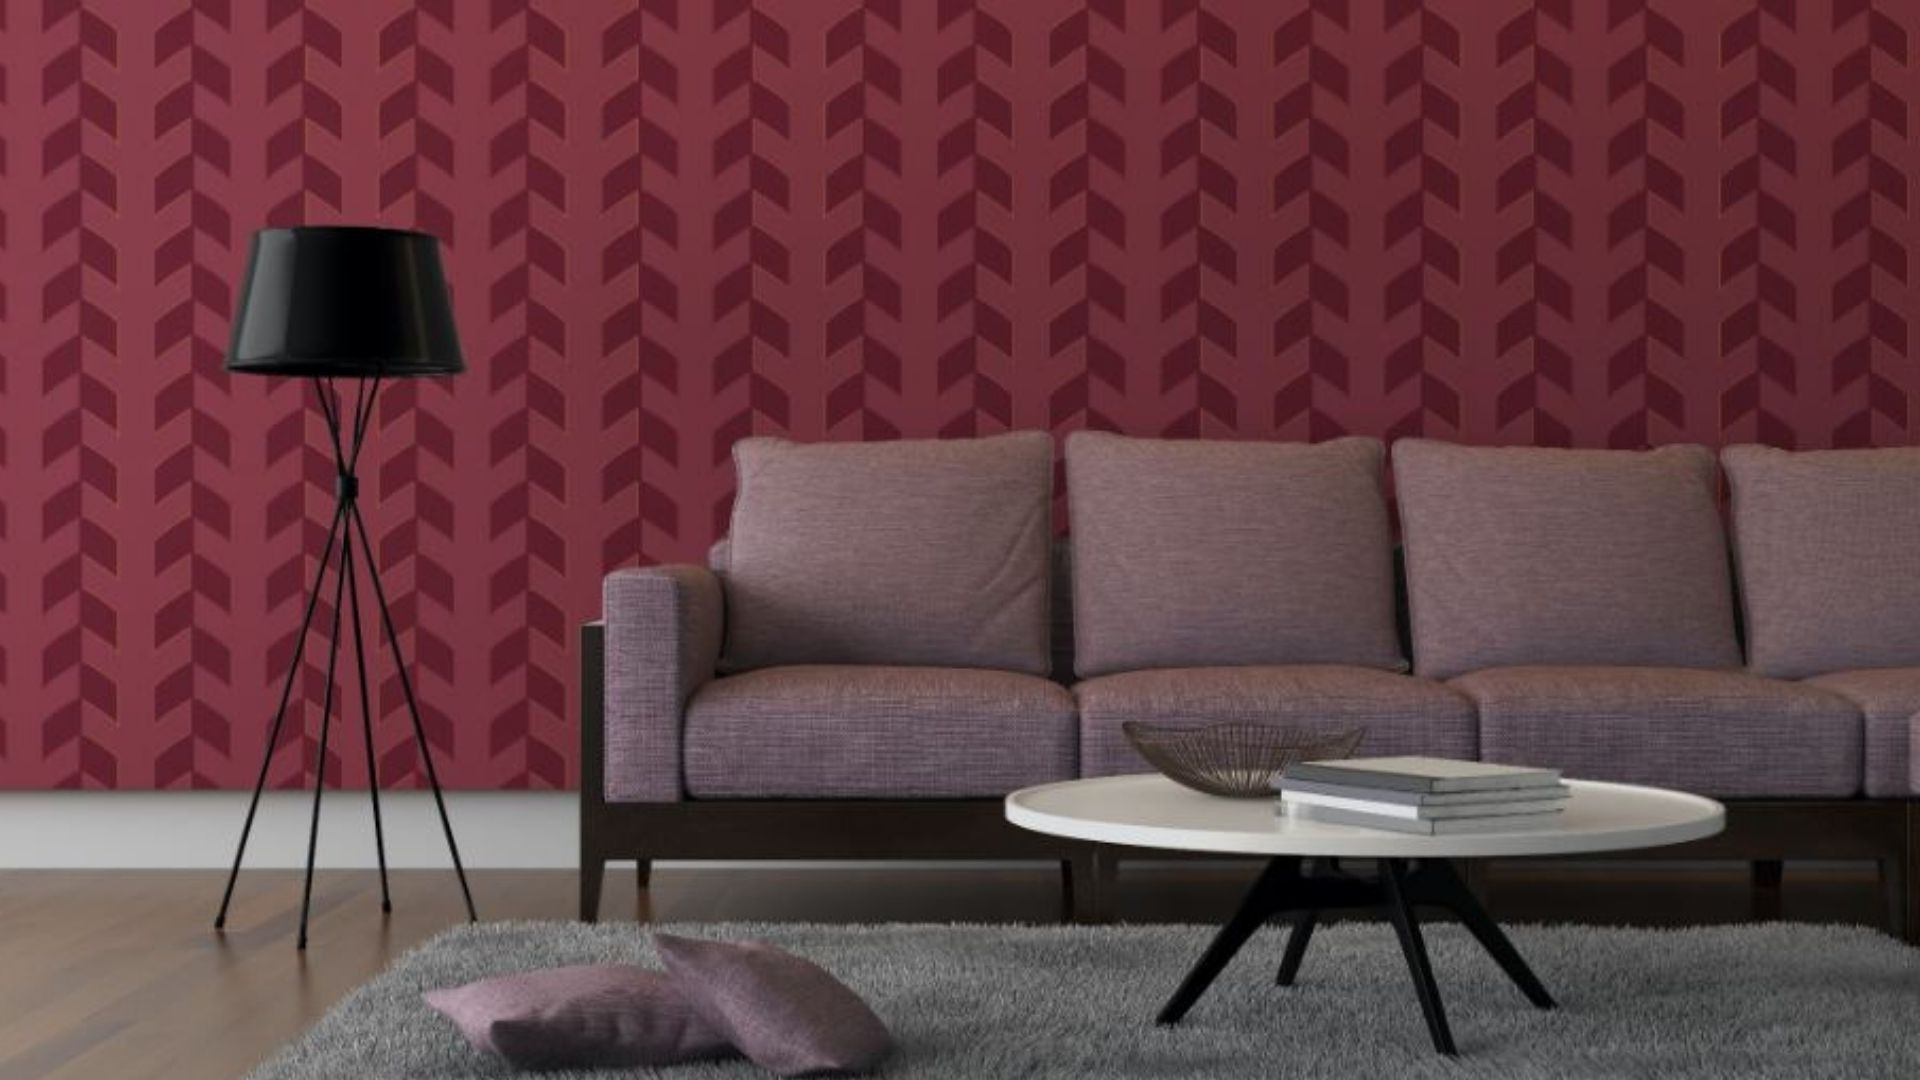 9 Asian Paints Wallpaper Designs For A Stunning Feature Wall Asian Paints Living Room